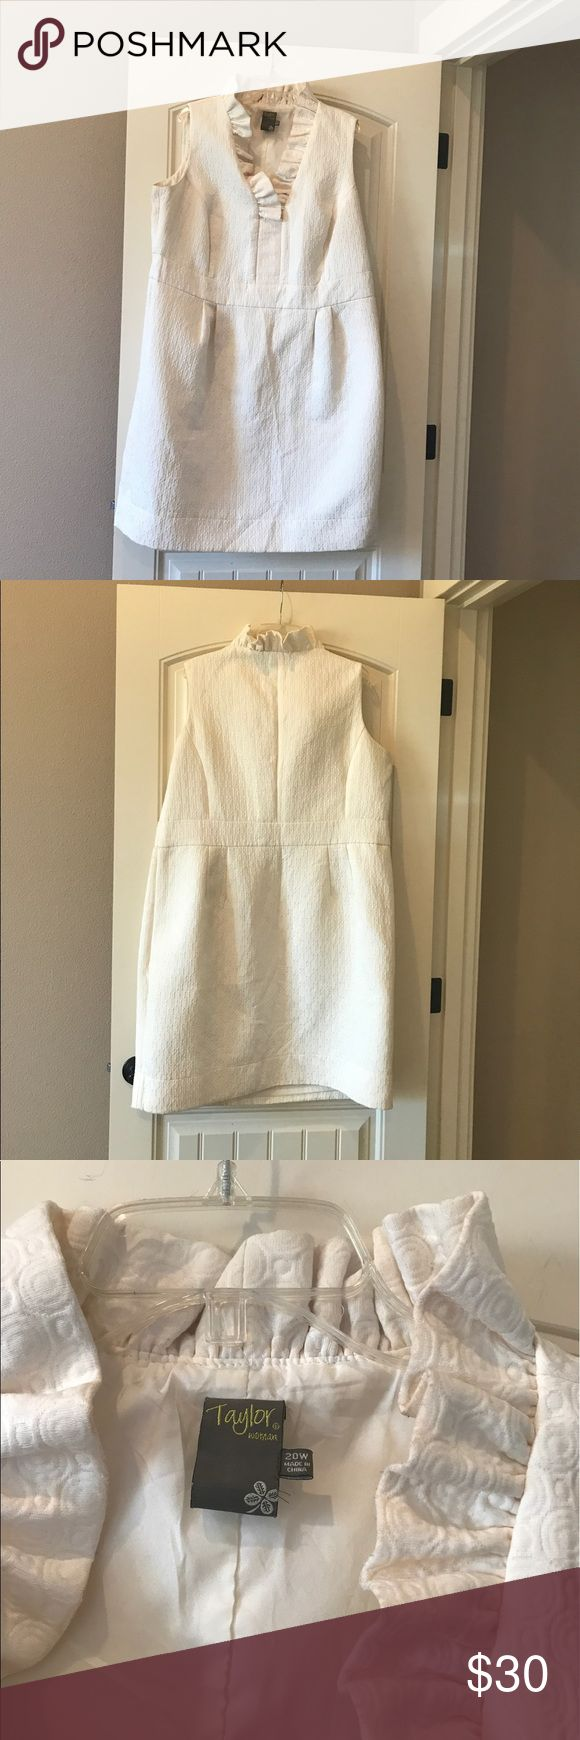 "Lord N Taylor 20W Woman's Dress Clothes Stunning dress. True to size. Taylor by Lord and Taylor. Woe to a couple of weddings. Will need to be cleaned. No stains. 41"" long. 24 inches across the front chest area; so if you double that you get 48 inches. It's off white Lord & Taylor Dresses"